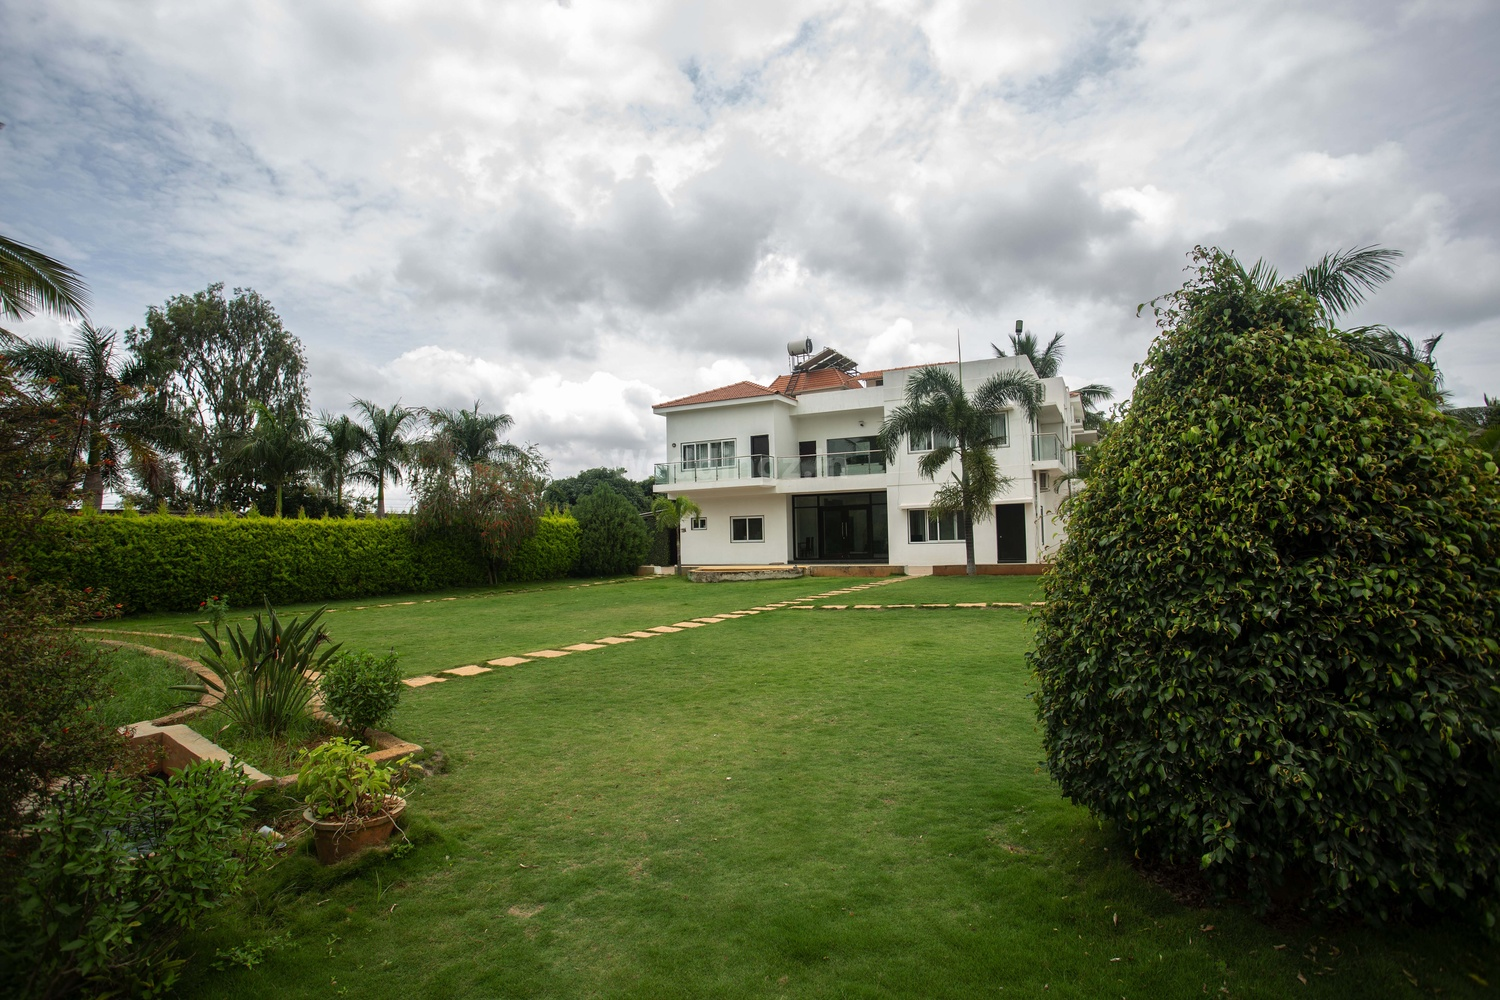 Heera Farm, Bangalore- Small Lawns in Bangalore